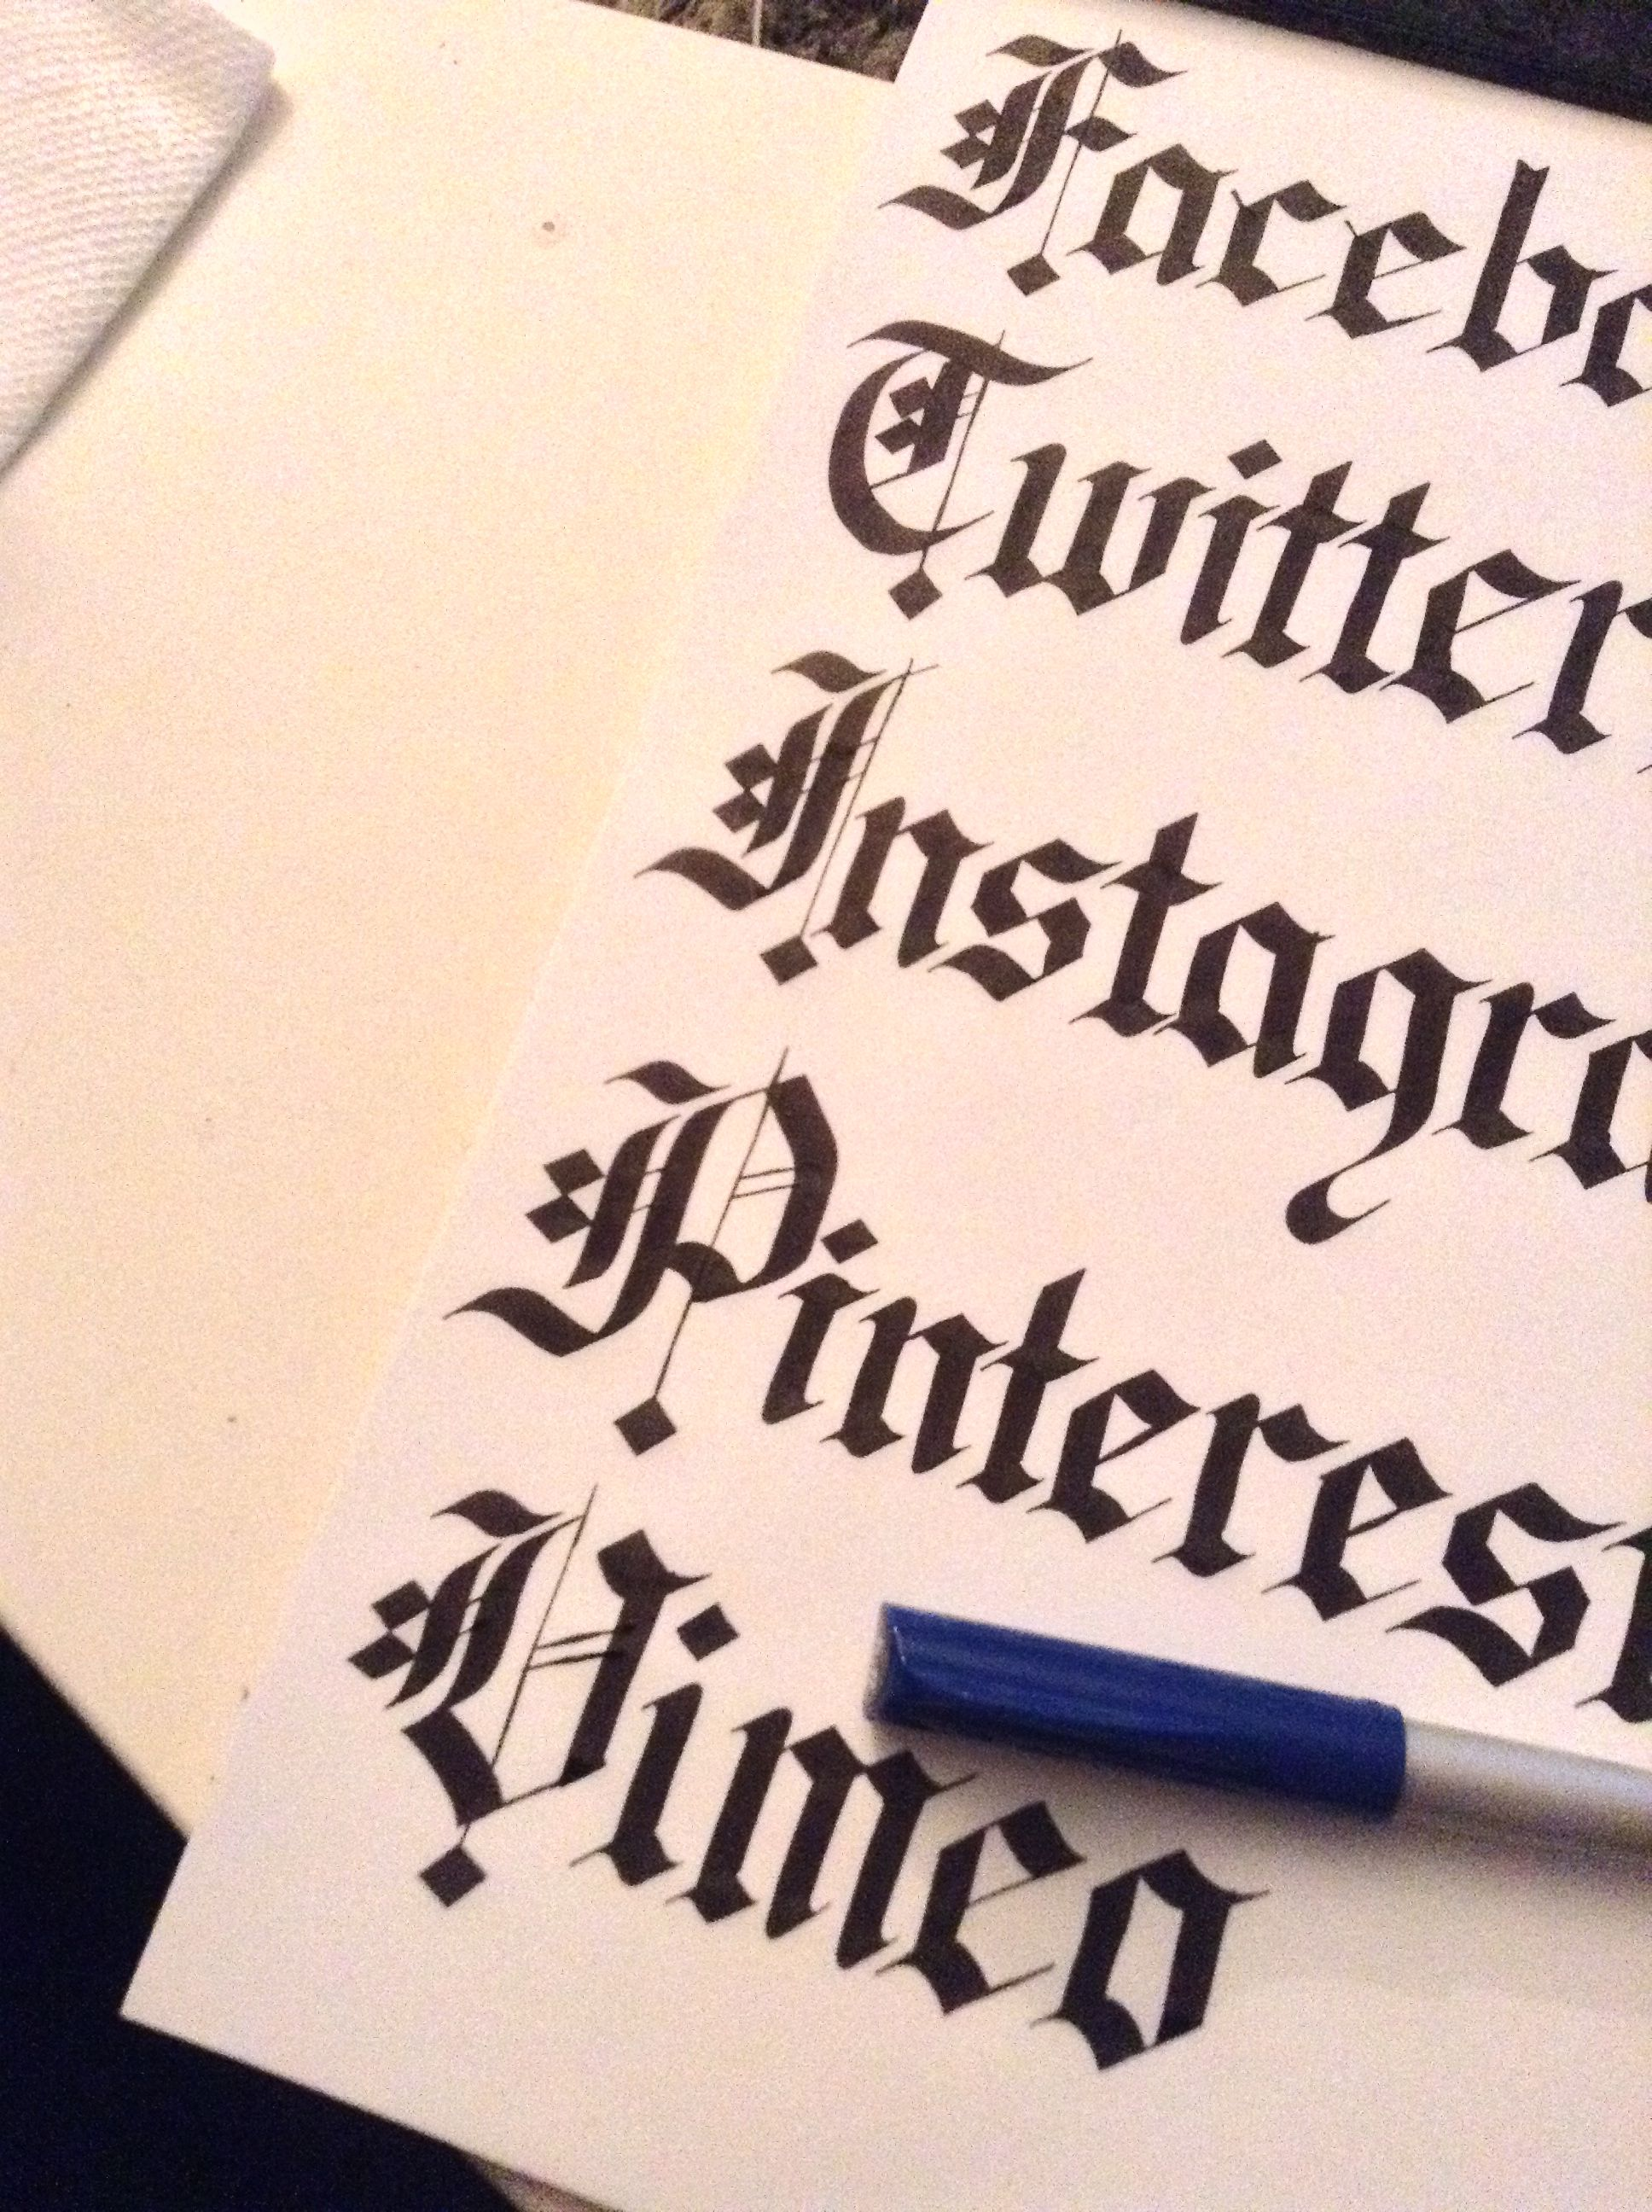 calligraphy play: social media - lyndsay wright design | calligraphy + hand lettering